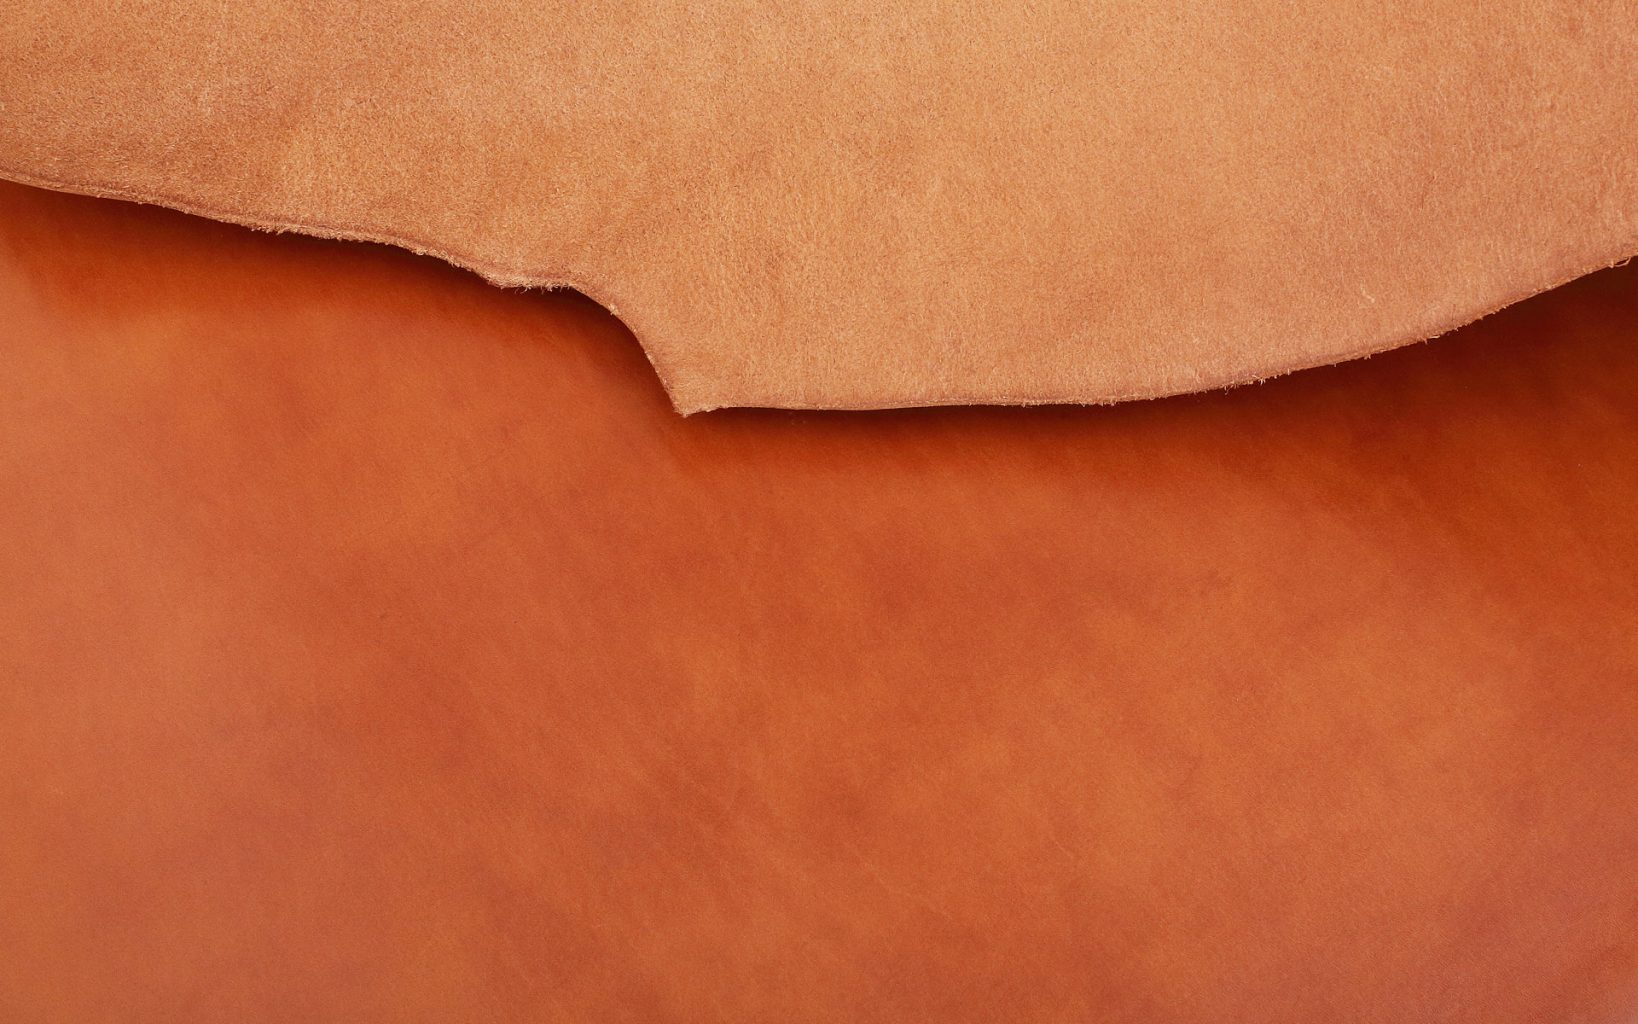 Thick oil leather of Tochigi leather sold by Hashimoto Sangyo